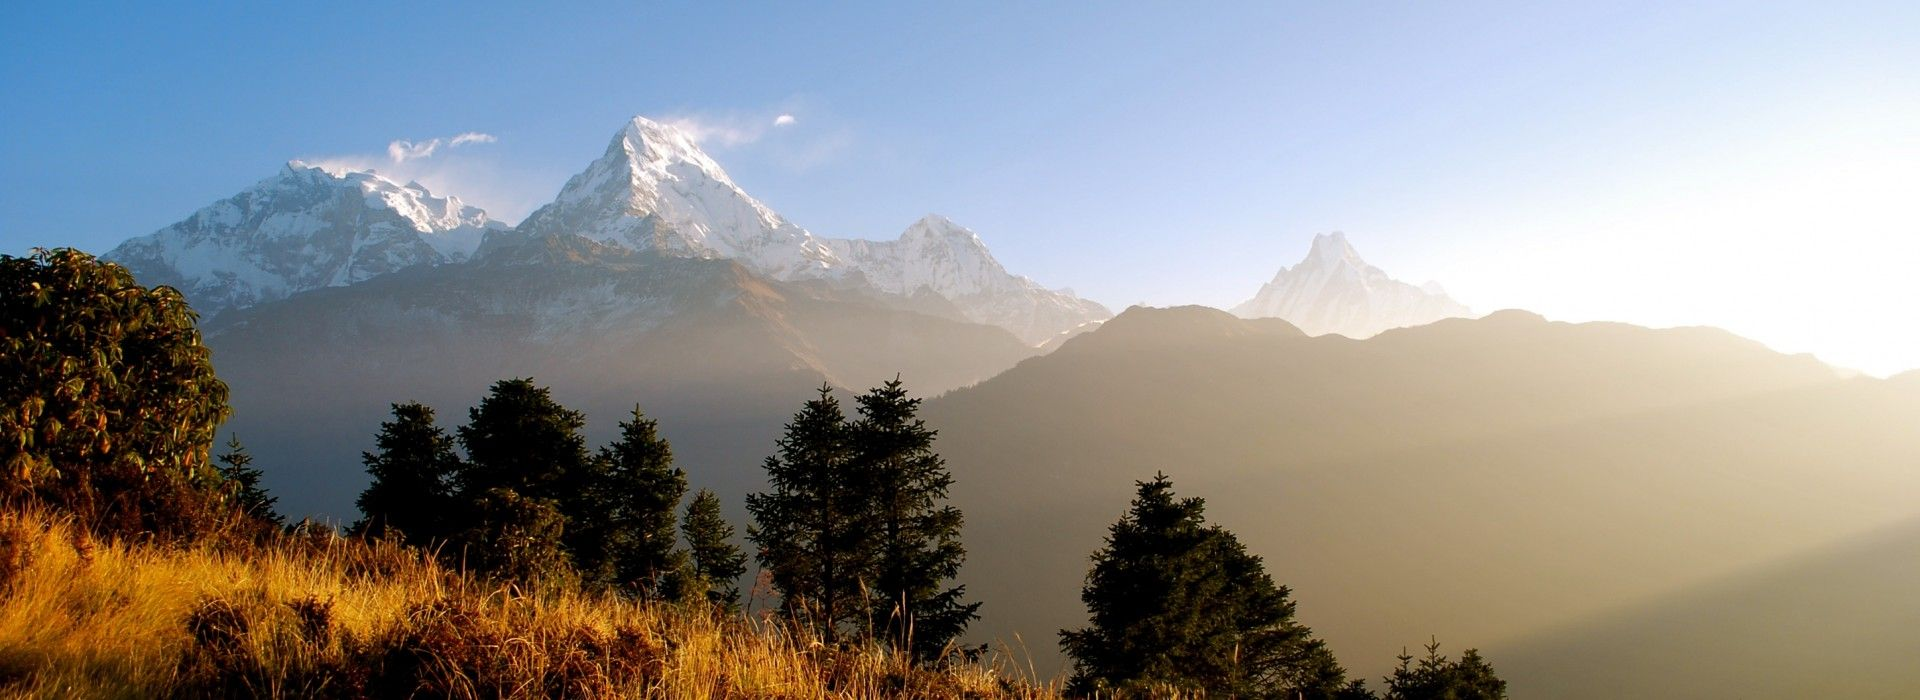 Cultural, religious and historic sites Tours in Everest Region